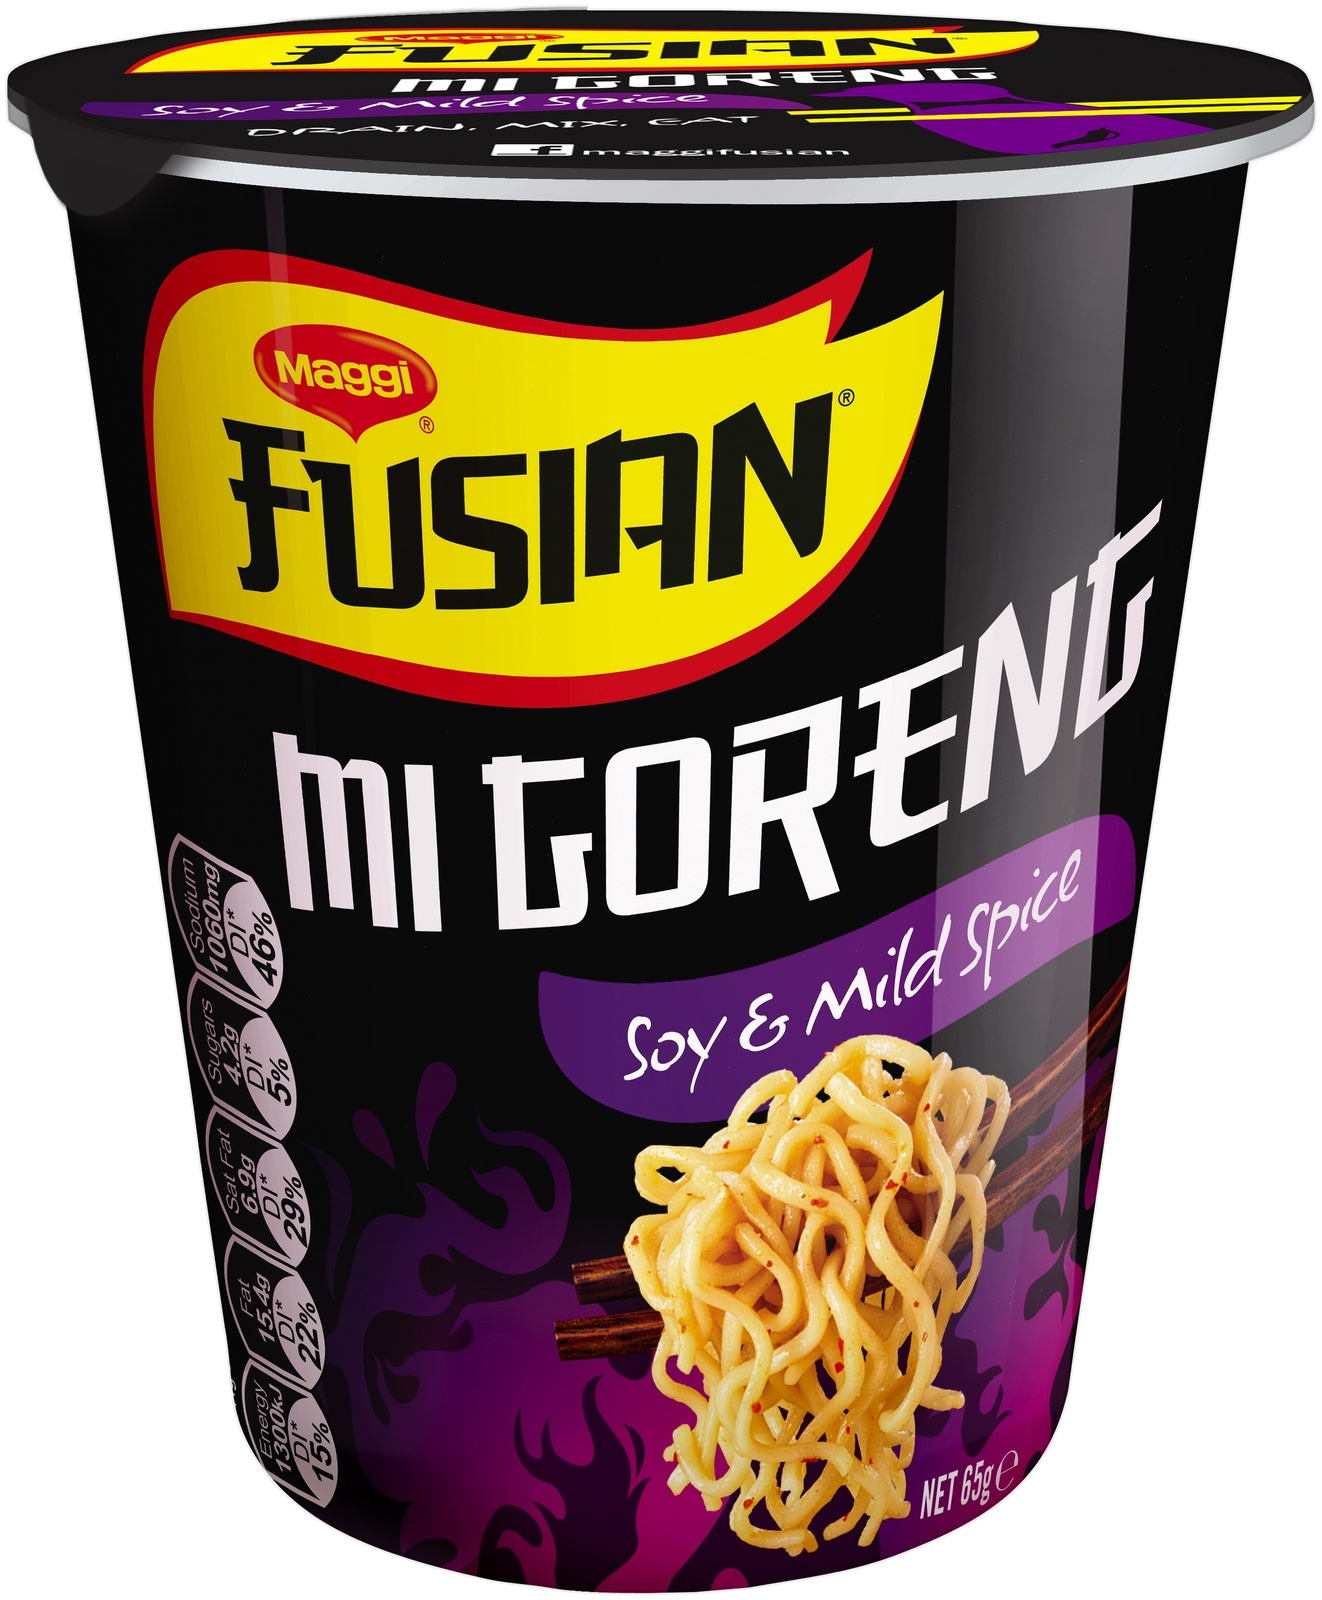 Maggi Fusian Cup Noodles - Mi Goreng Soy & Mild Spice 64g (12 Pack) image